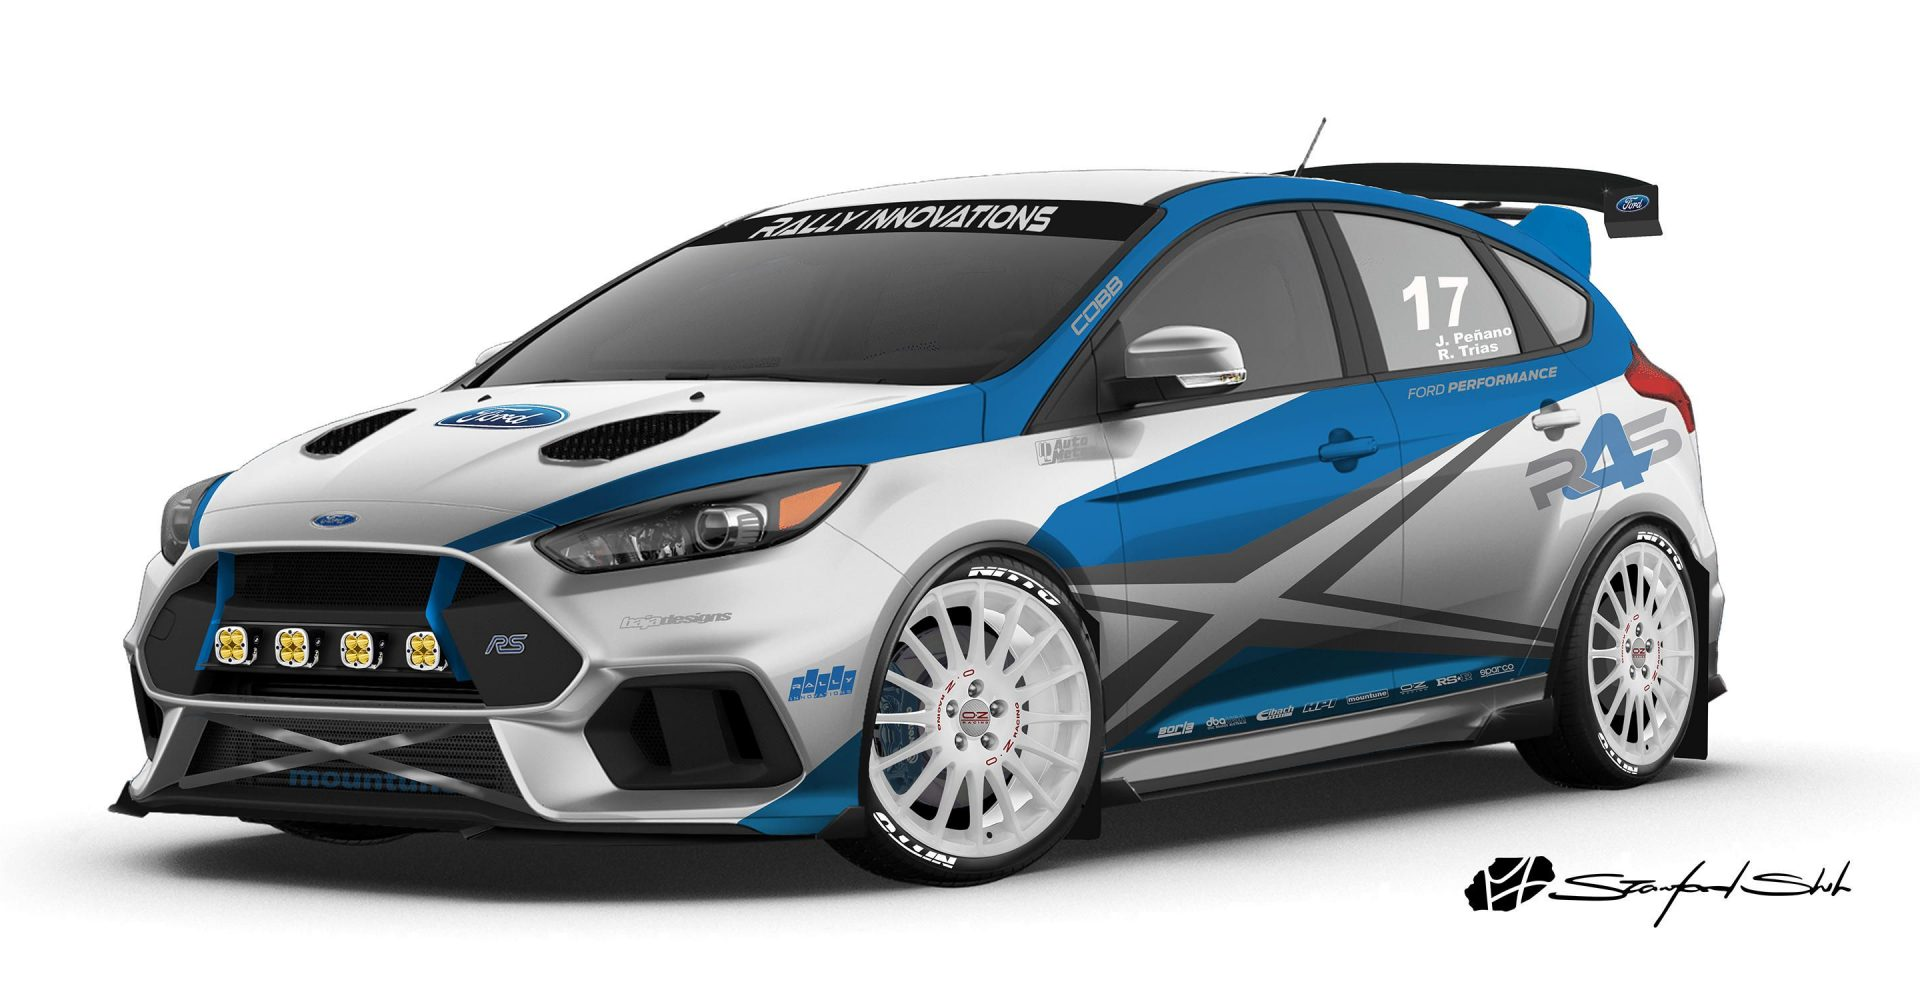 Ford shows off modded Focus hatches for SEMA